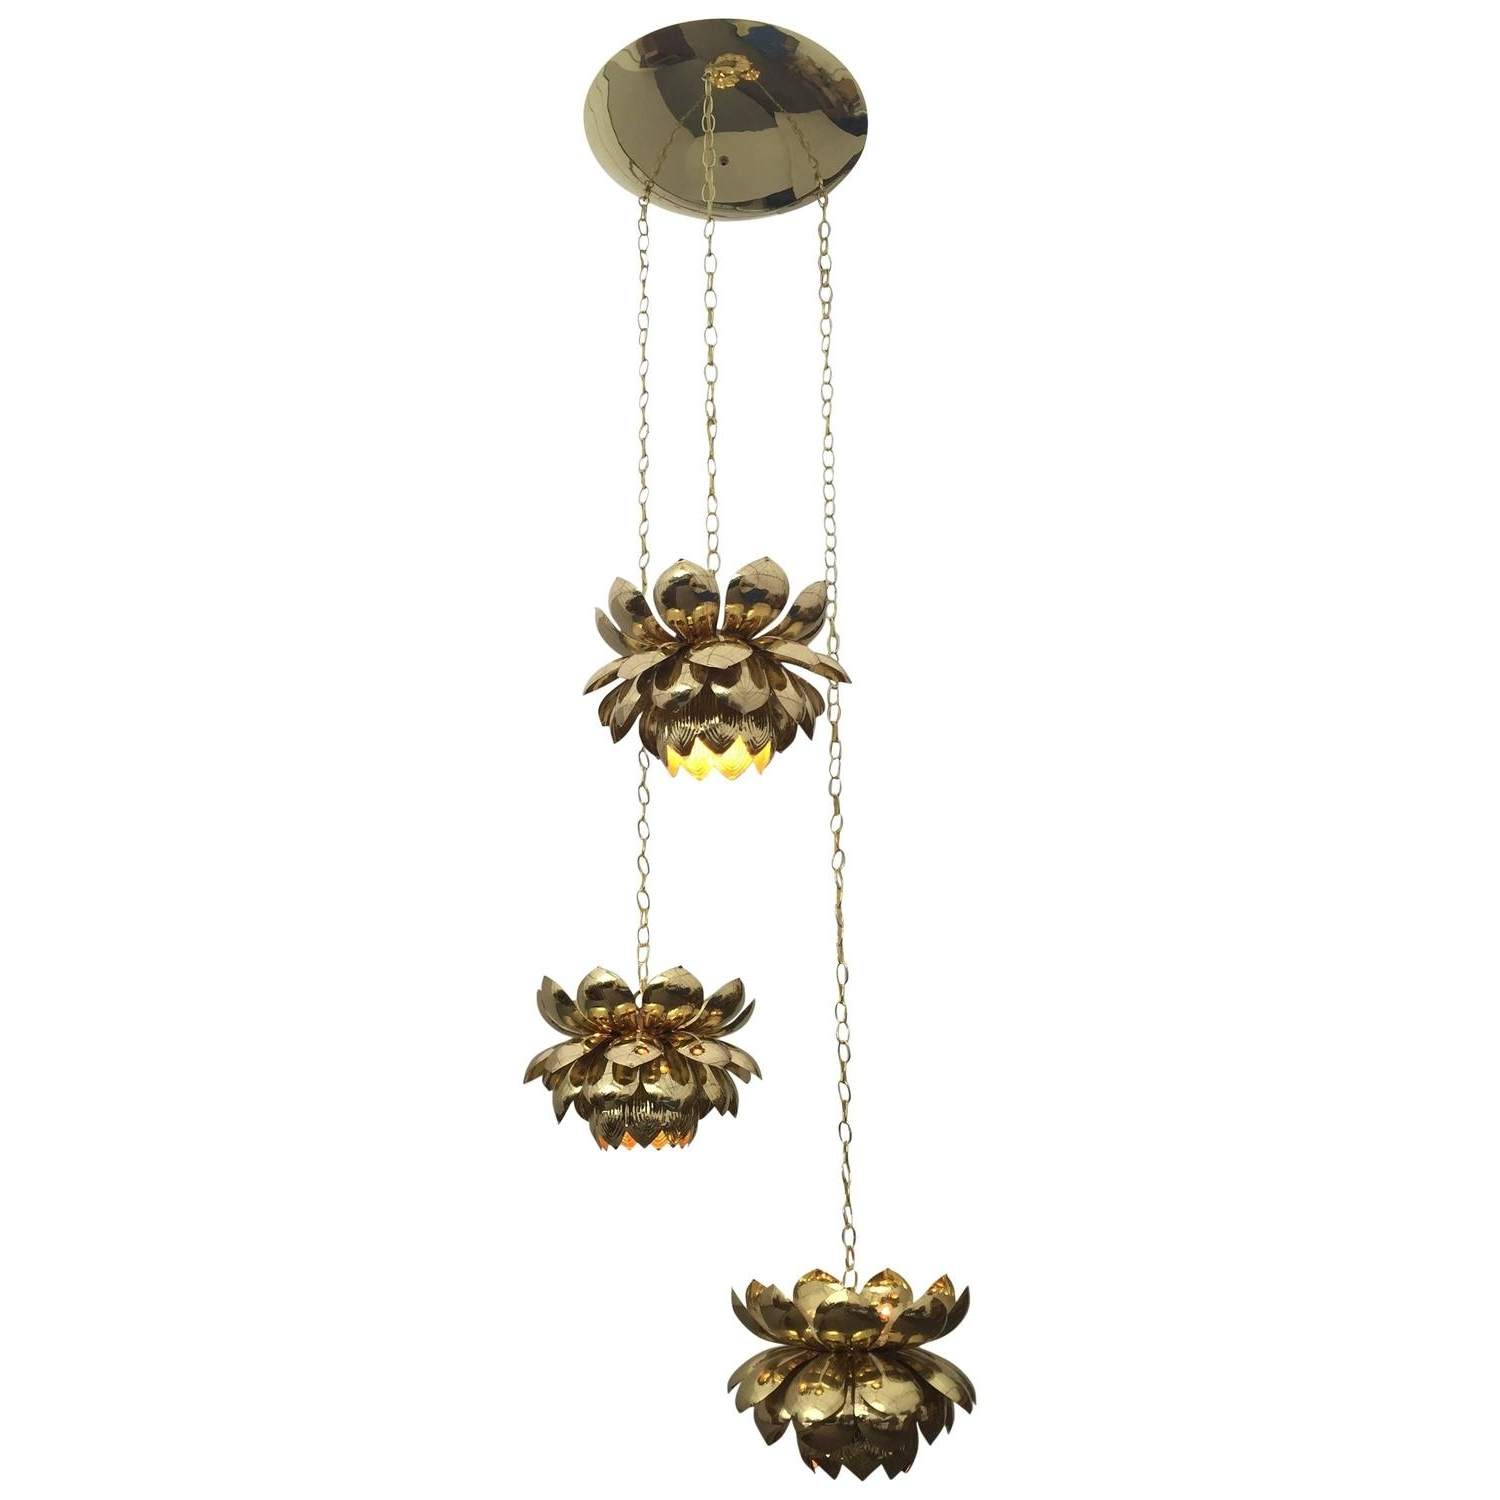 Massive Feldman Brass Chandelier With Large Lotus Pendants For Sale Inside Widely Used Large Brass Chandelier (View 6 of 20)